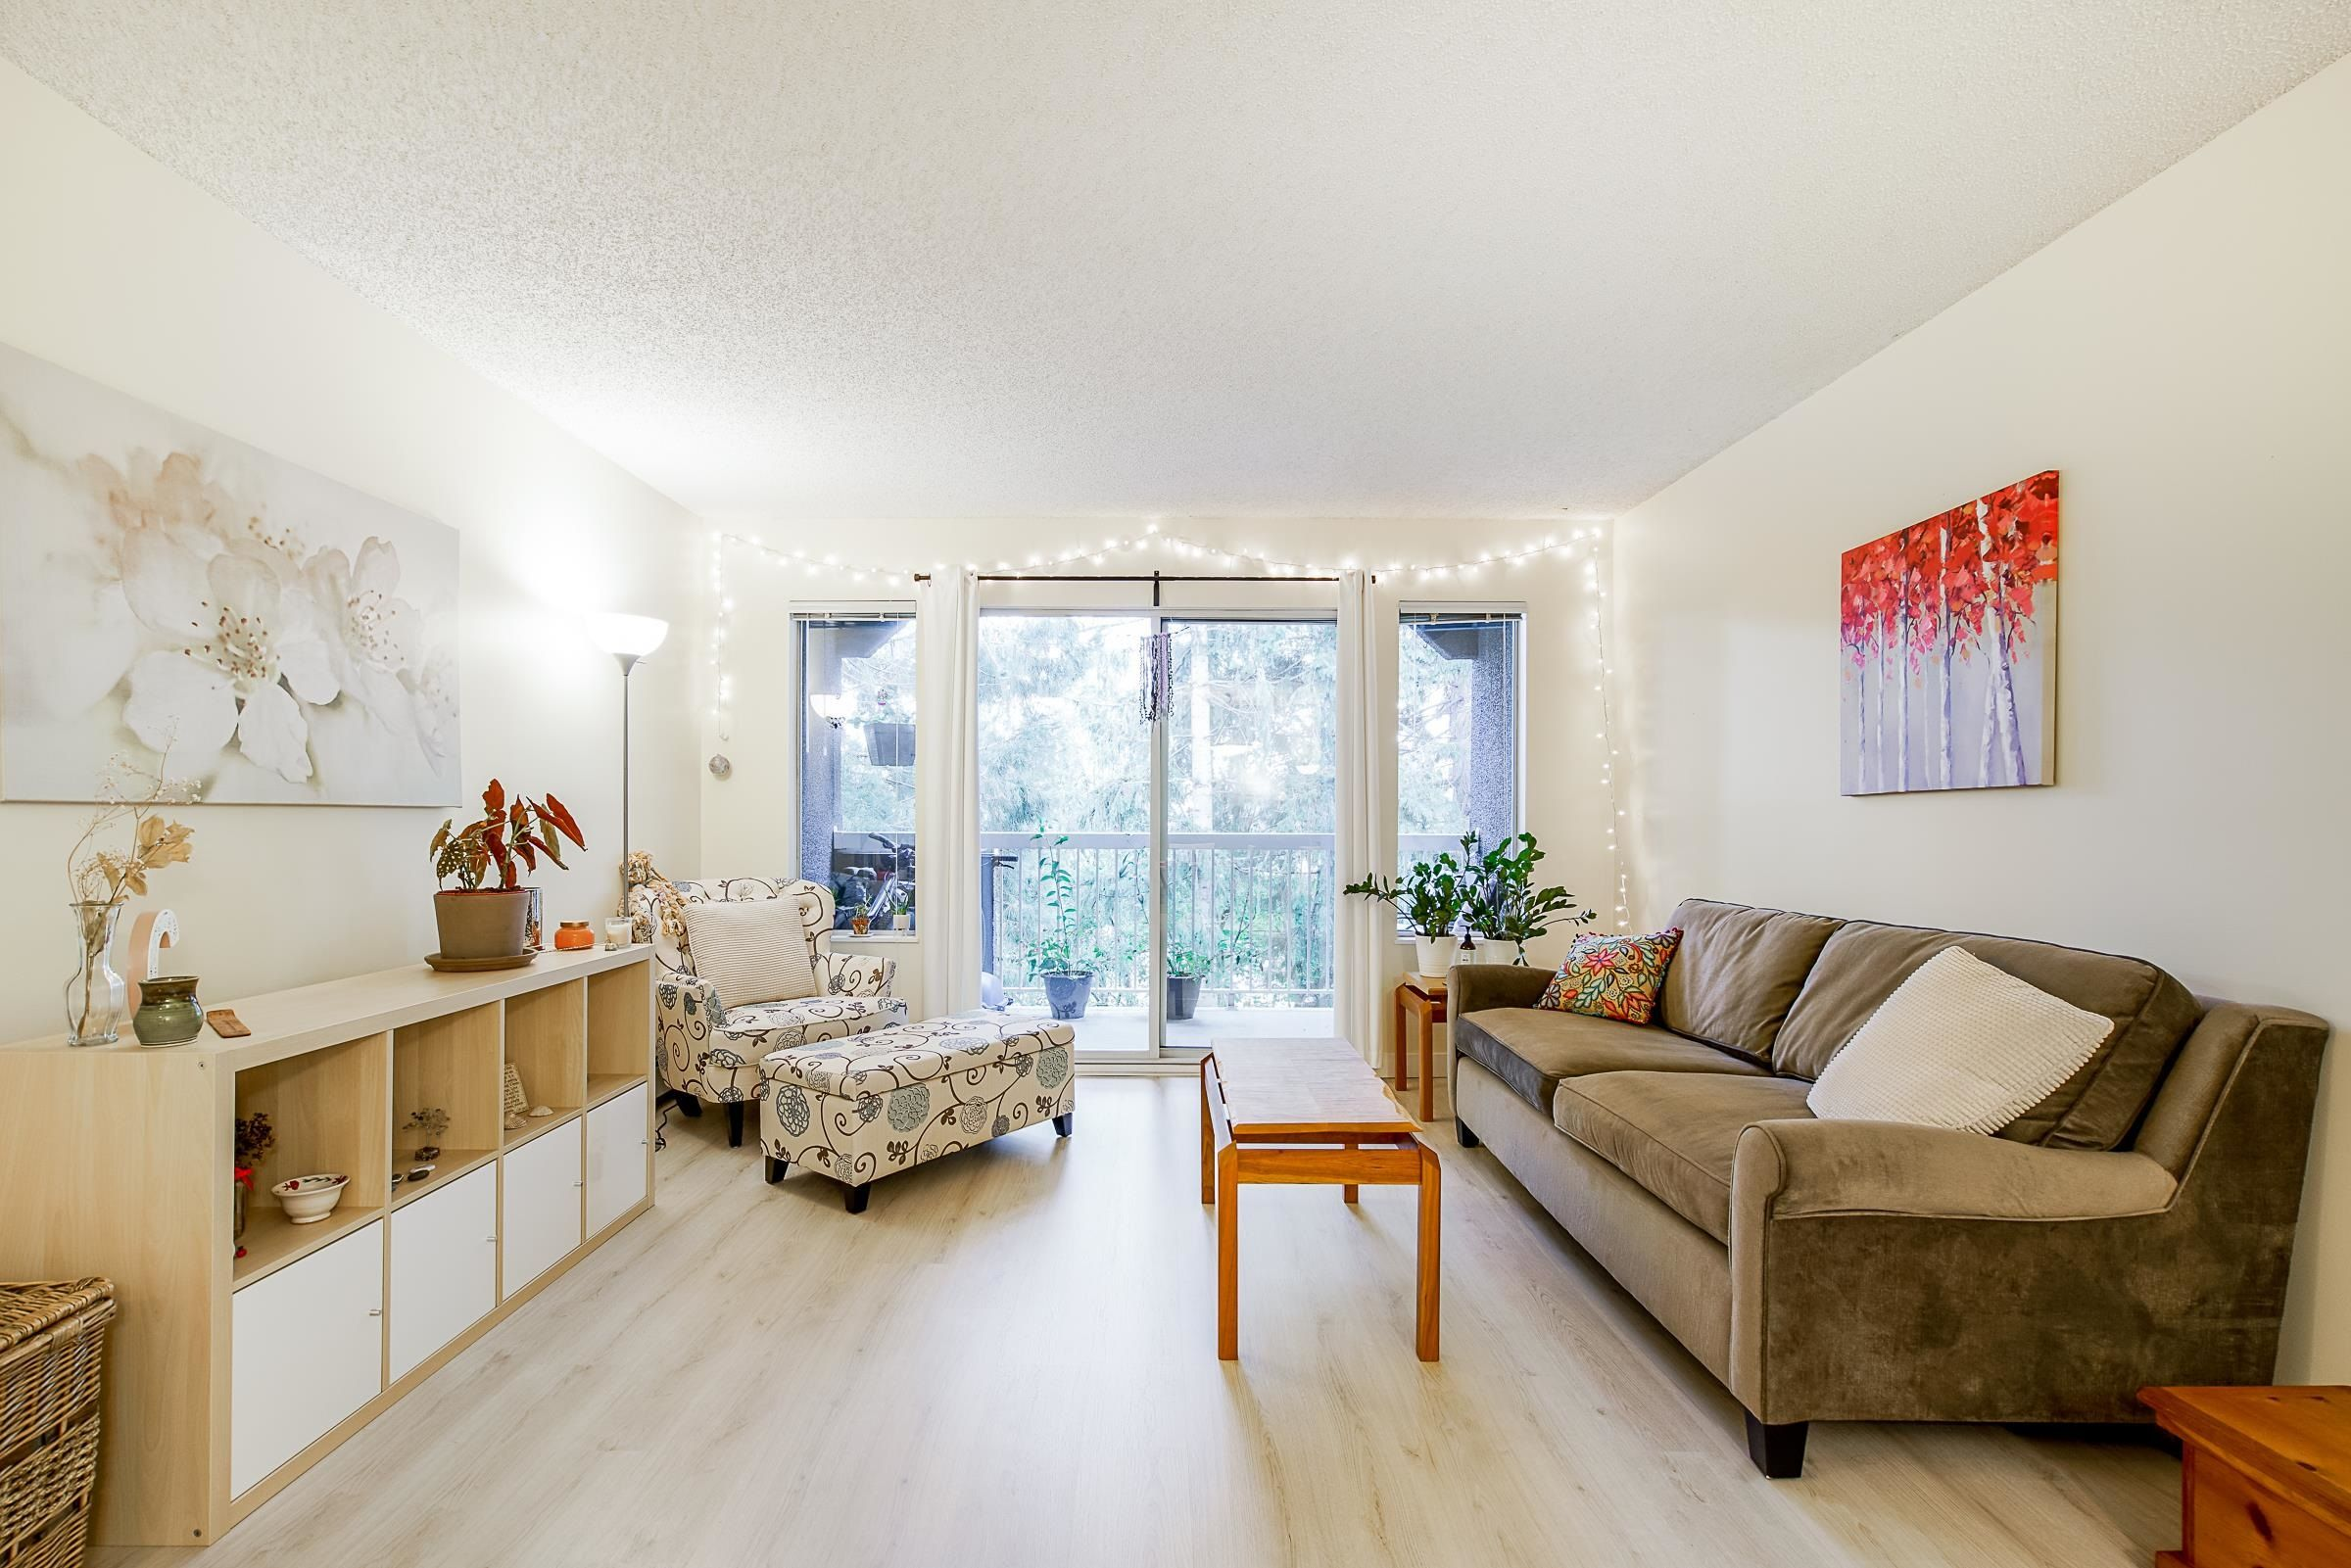 """Main Photo: 303 5664 200 Street in Langley: Langley City Condo for sale in """"Langley Village"""" : MLS®# R2624144"""